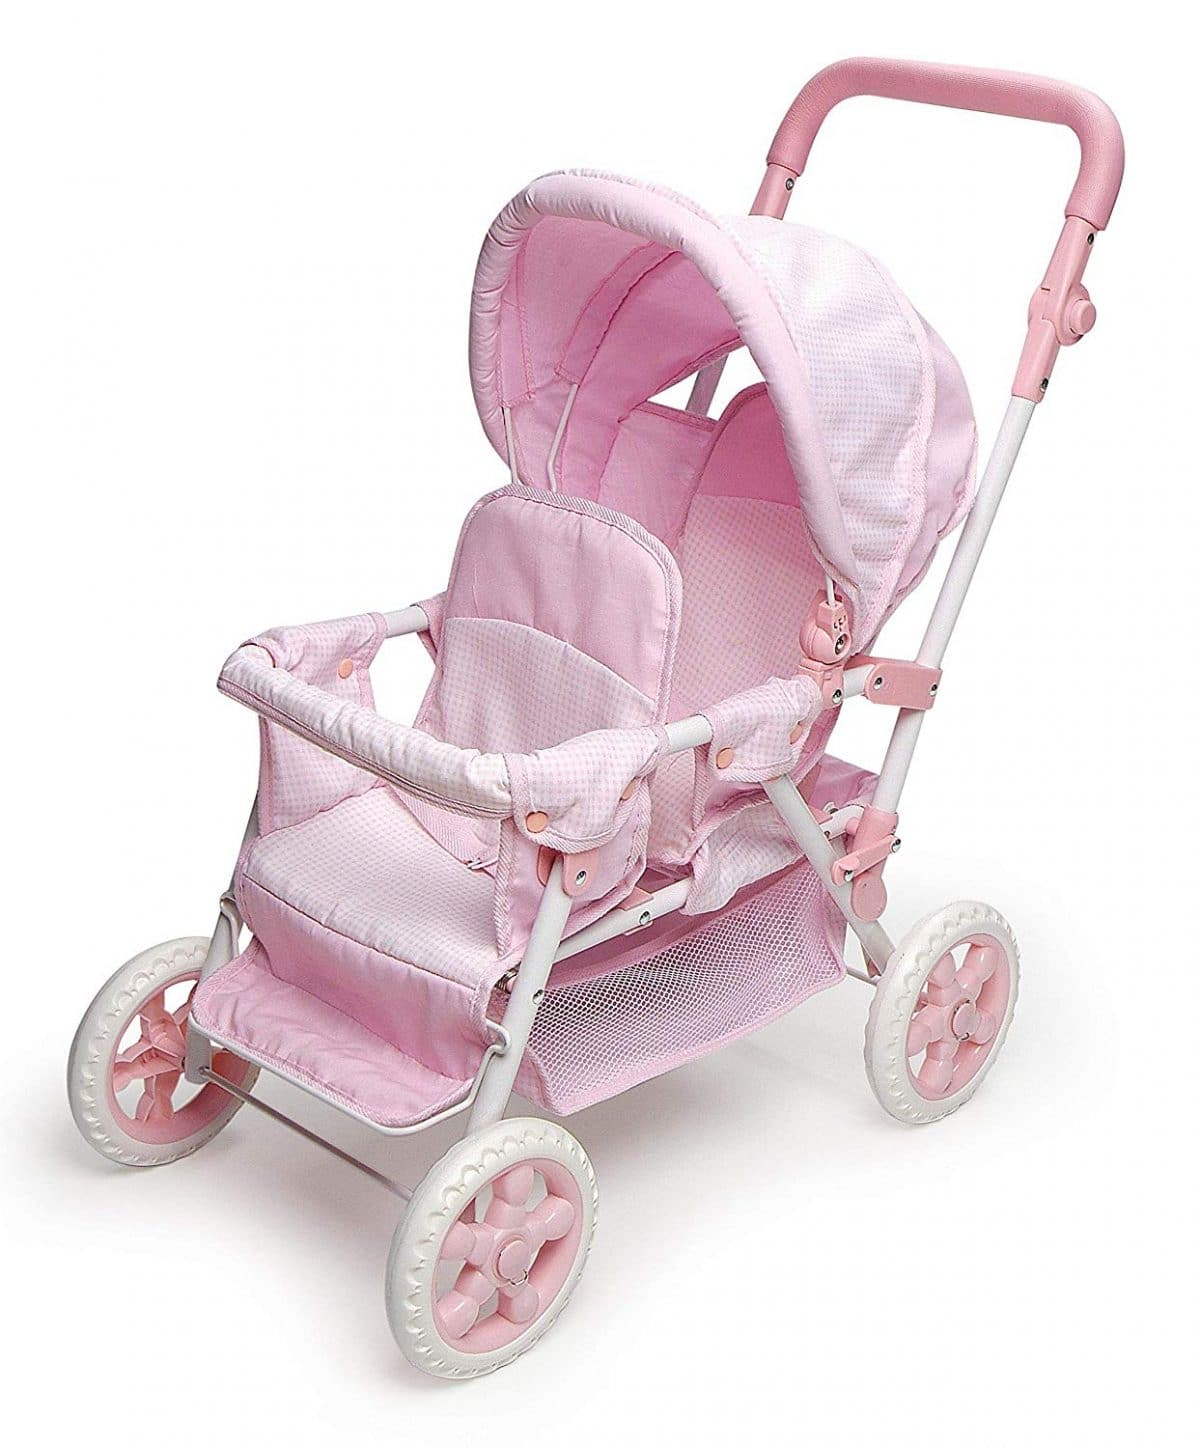 Deluxe Double Jogger Doll Twin Stroller Adjustable Handle High Quality